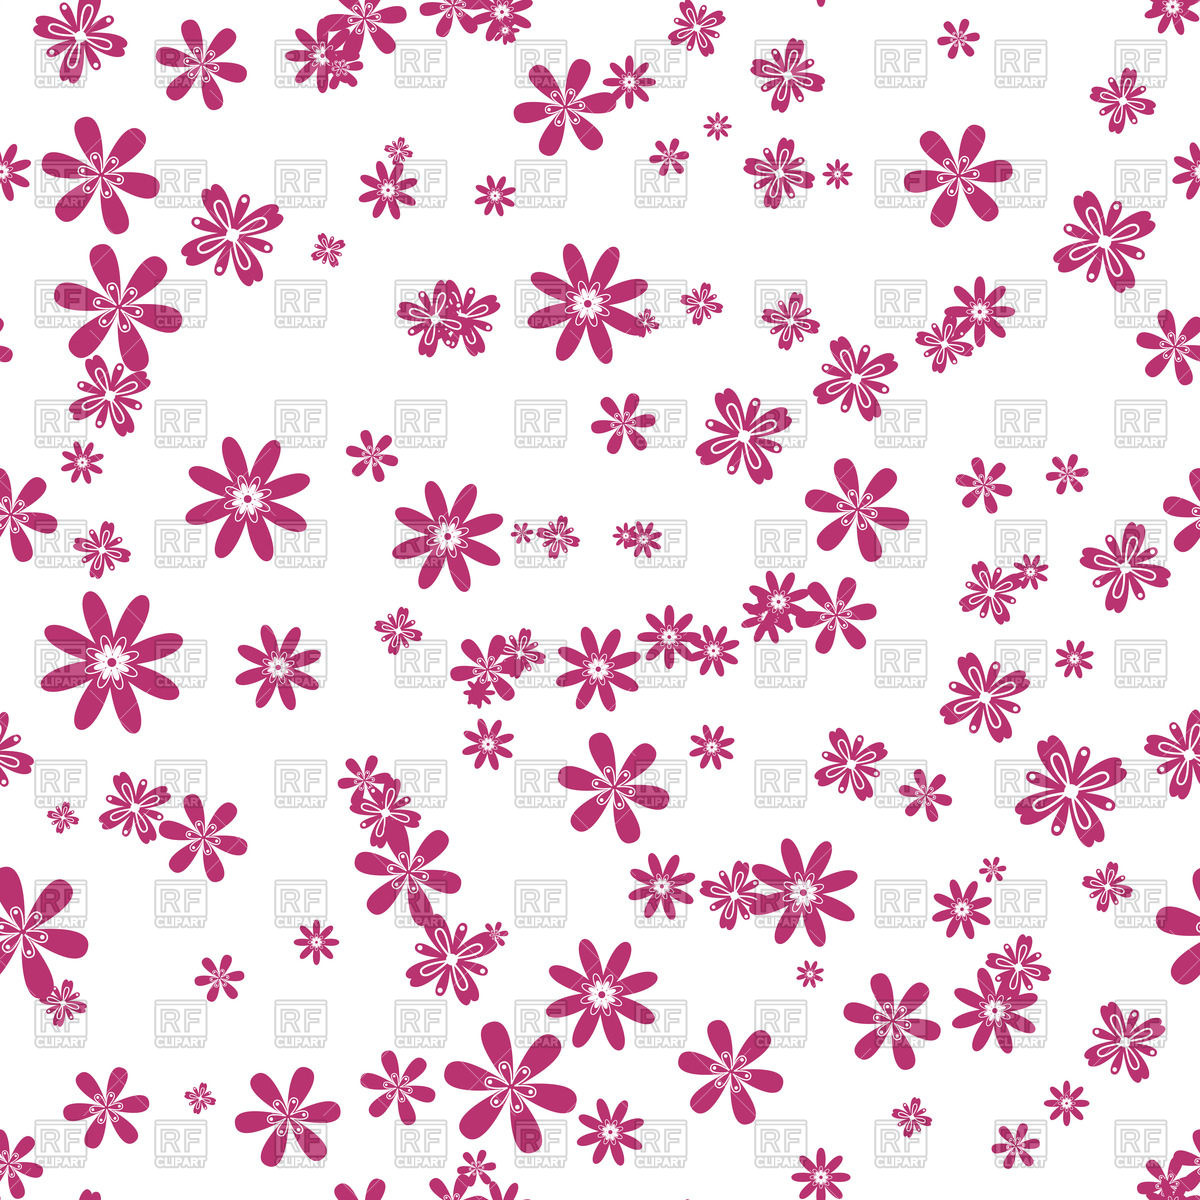 Pink flower pattern clipart.